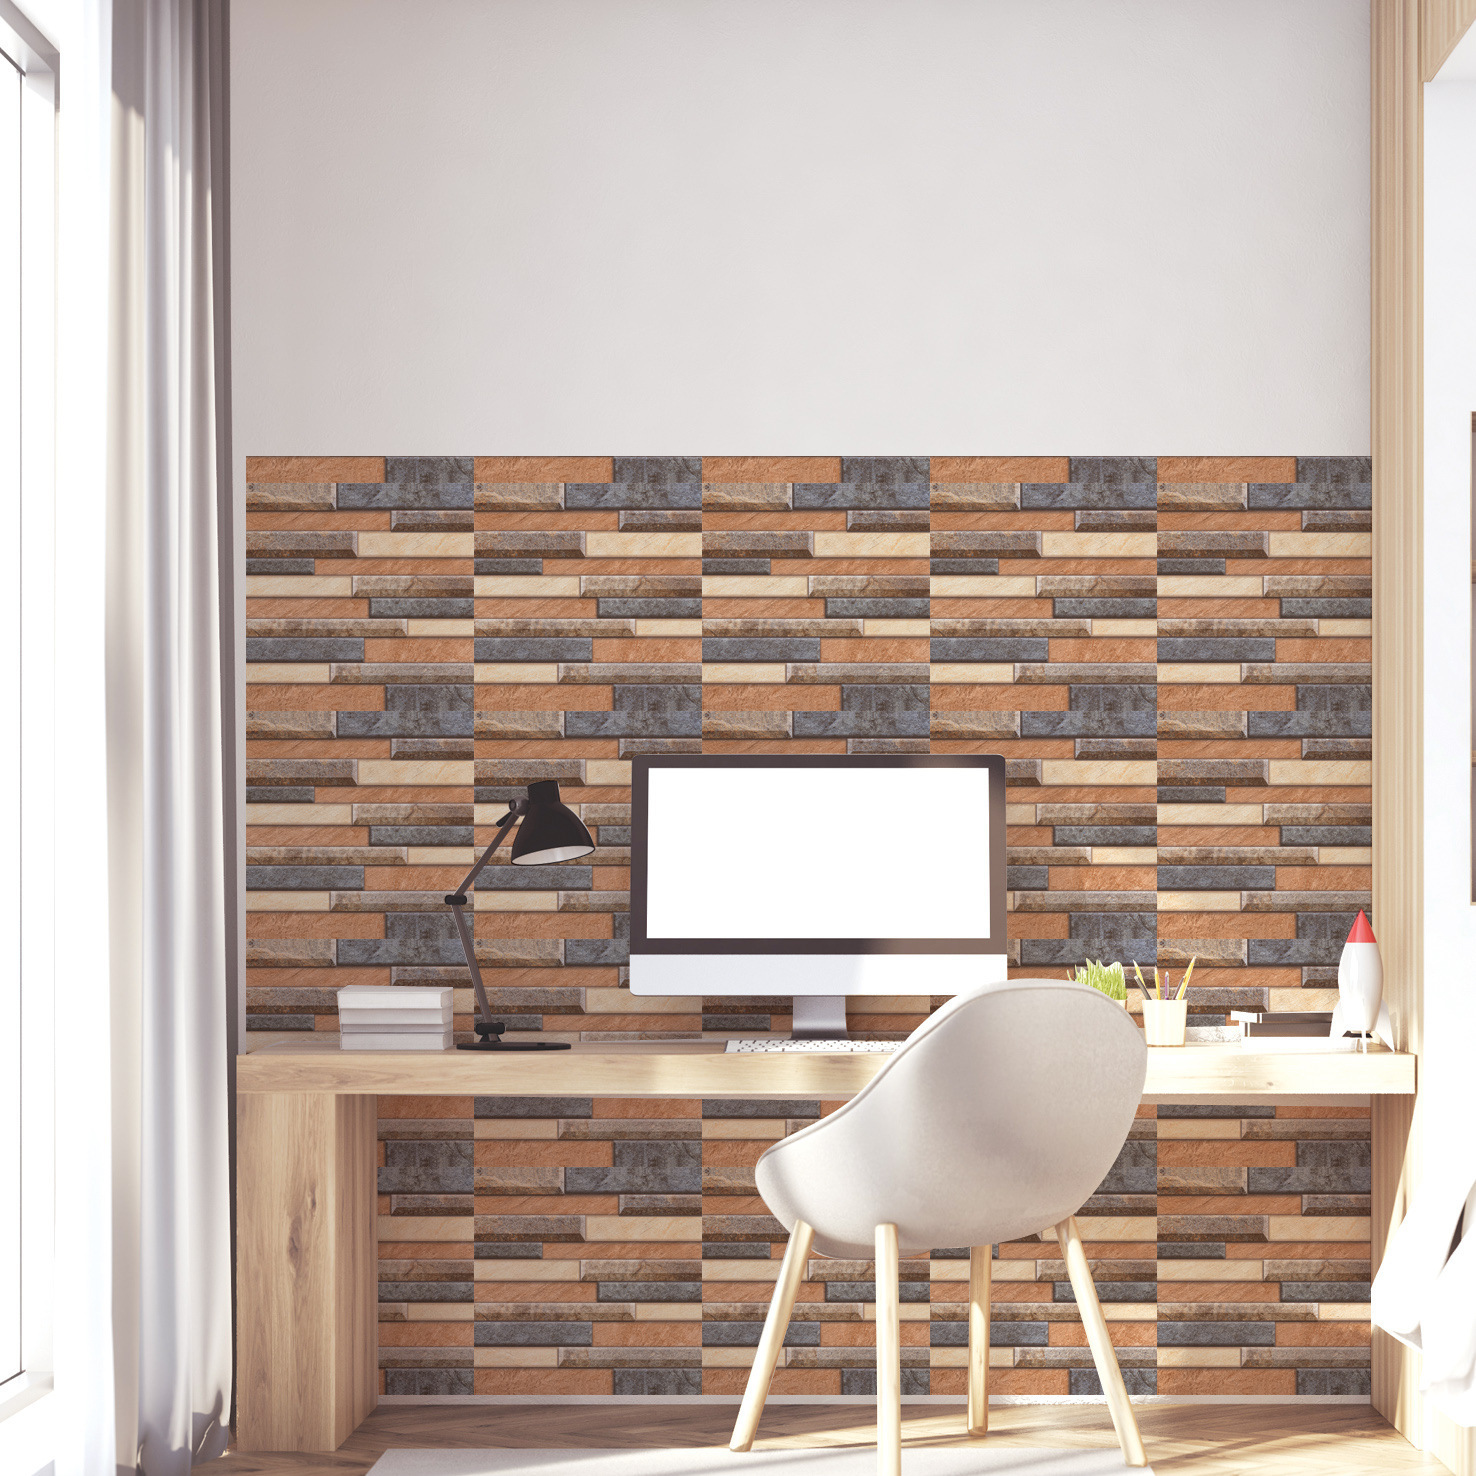 3D Simulation Brick Wall Stickers Retro Nostalgia Bedroom Living Room Bathroom Wall Decoration Three dimensional Tile Stickers B in Wall Stickers from Home Garden